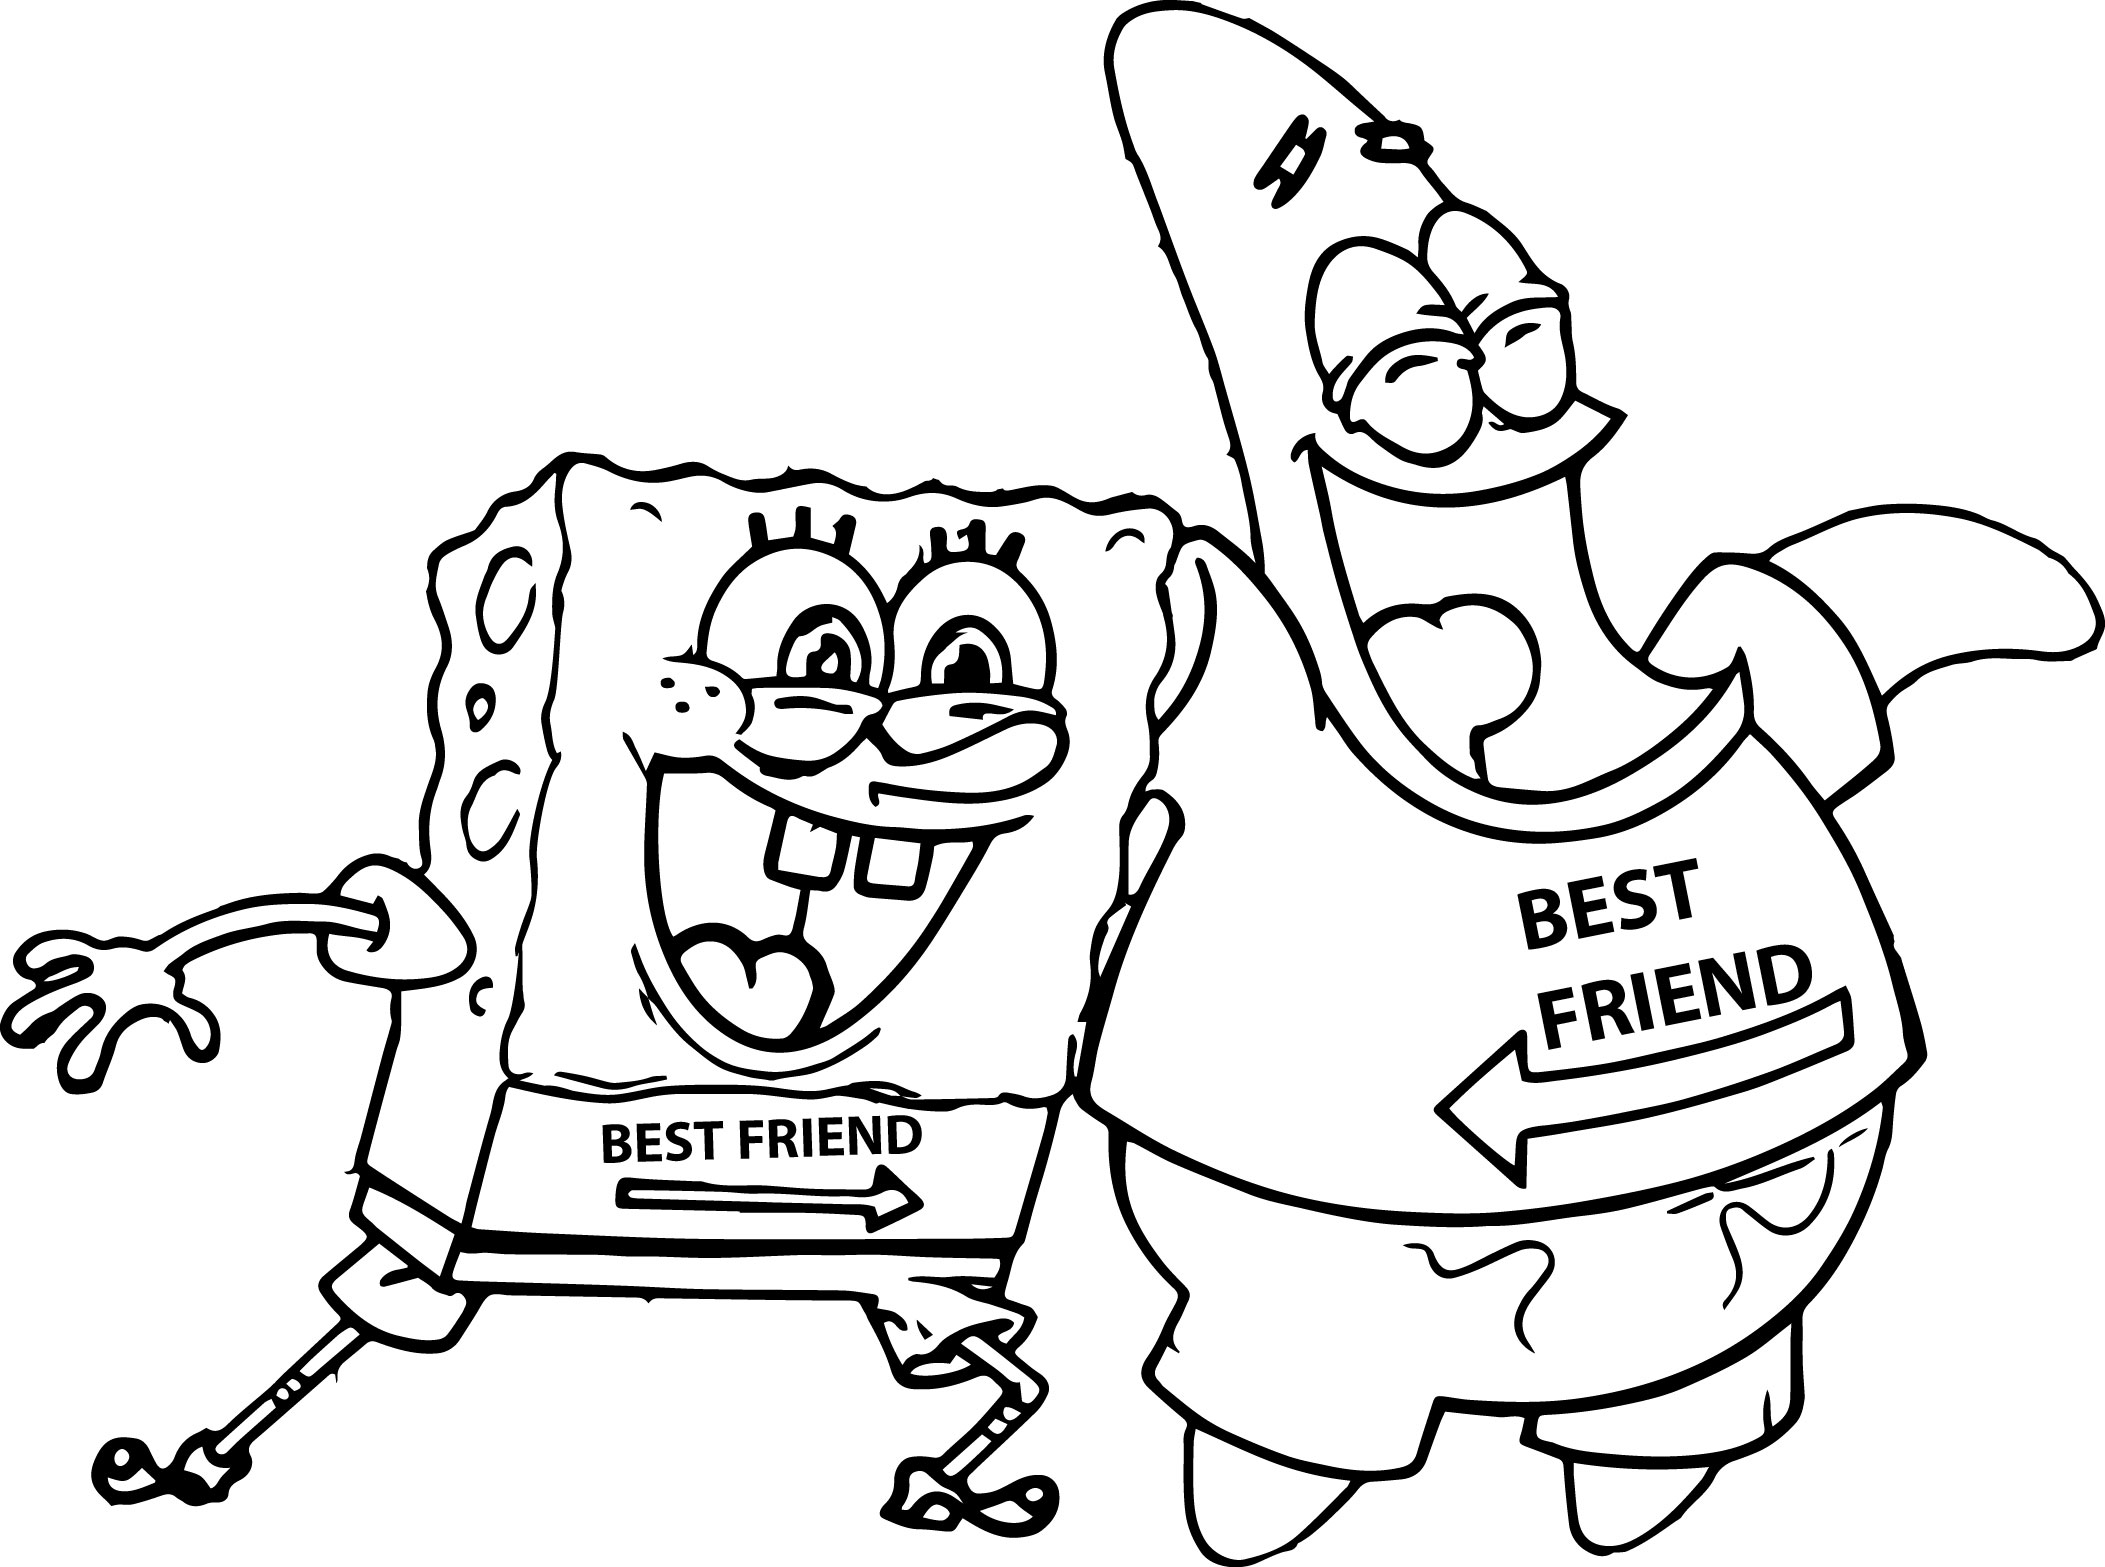 coloring pages best friends best friend coloring pages to download and print for free pages best coloring friends